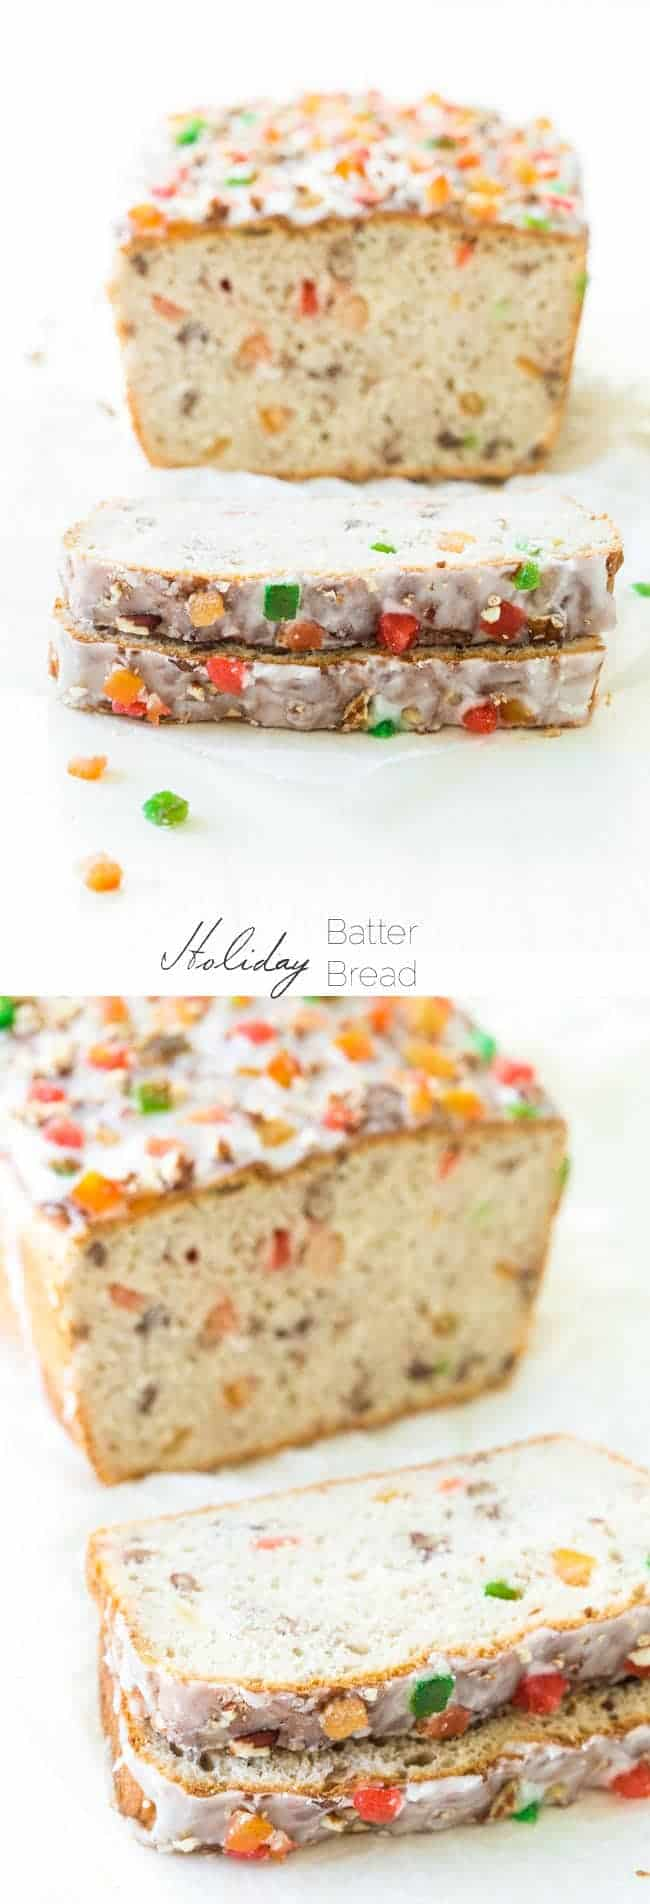 Holiday Batter Bread - An, easy, no-knead bread that is SO pretty and perfect for Christmas! | Foodfaithfitness.com |#recipe